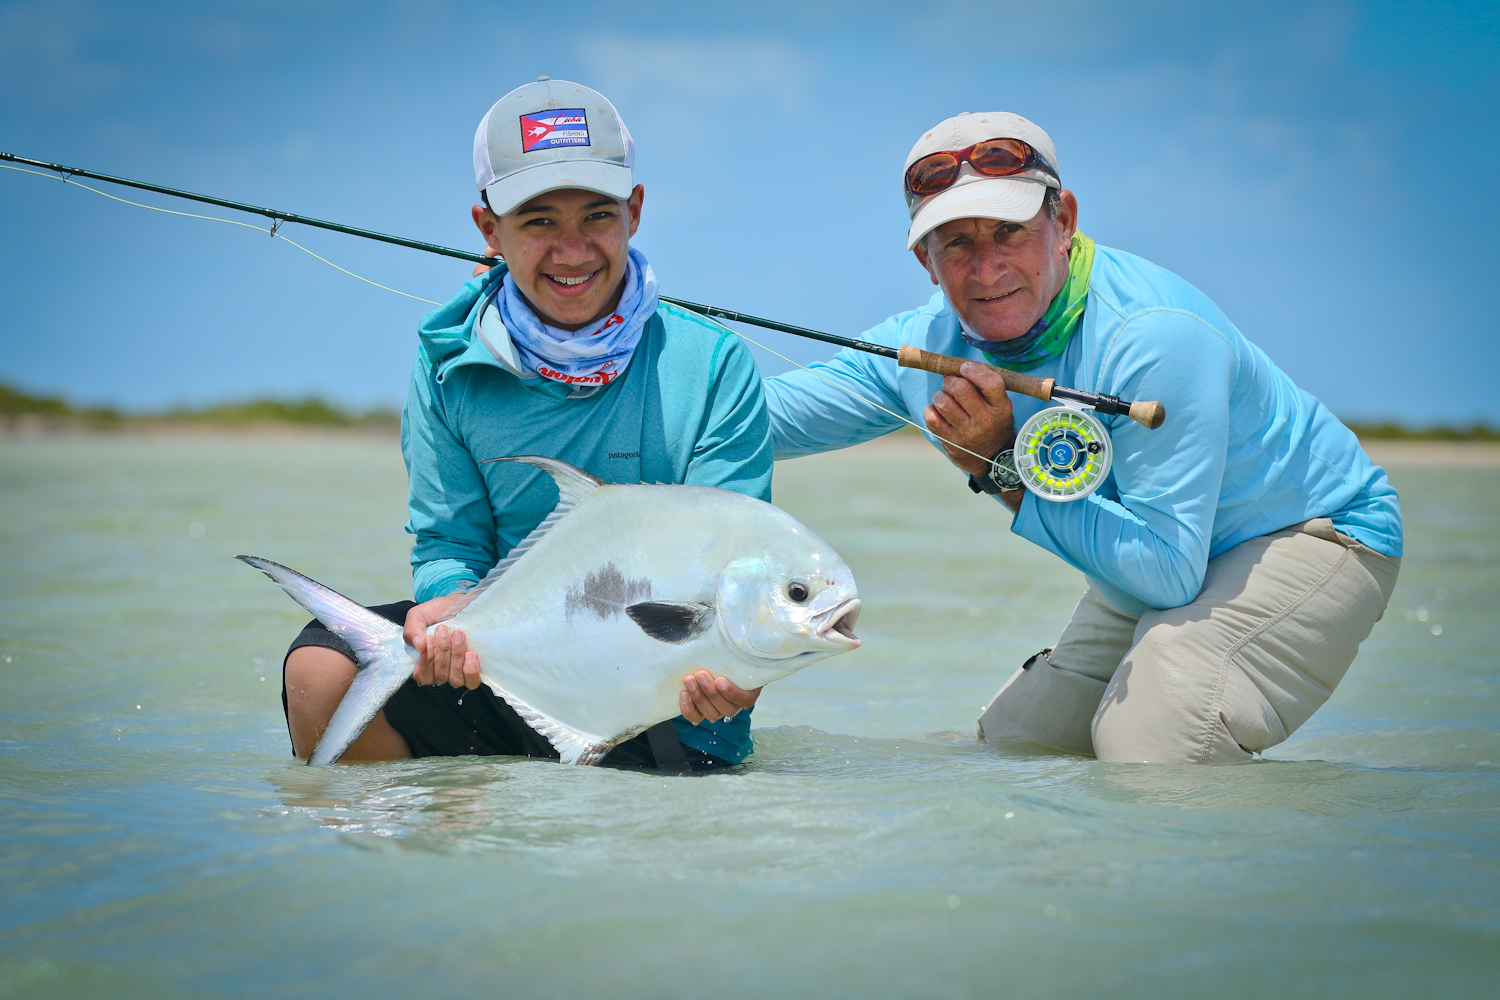 Greger and our guide Rafael with a Permit caught while wading. Greger's first of many I hope.....